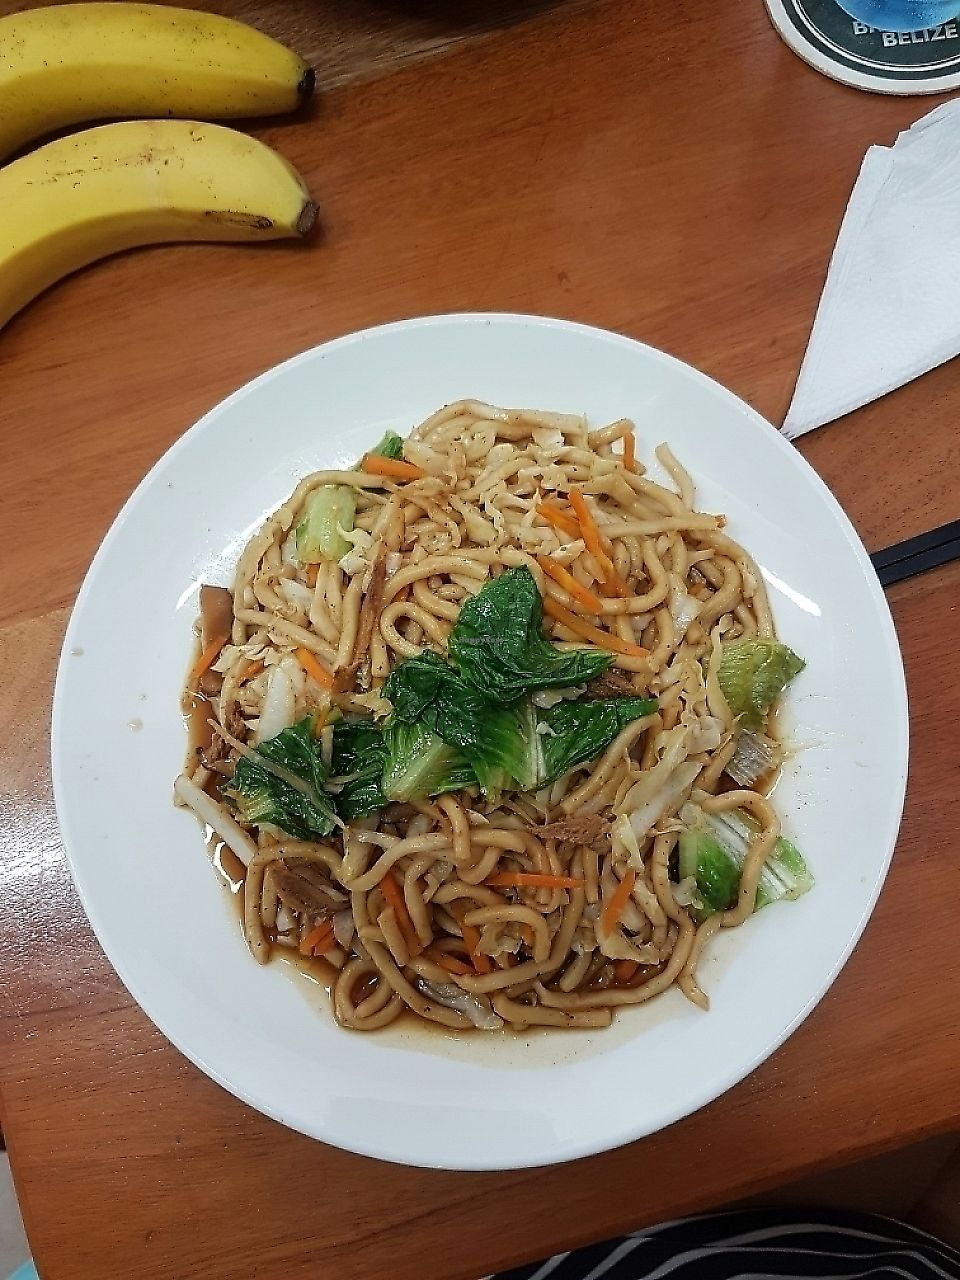 """Photo of Ma Ma Chen's  by <a href=""""/members/profile/PernilleR"""">PernilleR</a> <br/>Fried noodles <br/> March 9, 2017  - <a href='/contact/abuse/image/28318/274469'>Report</a>"""